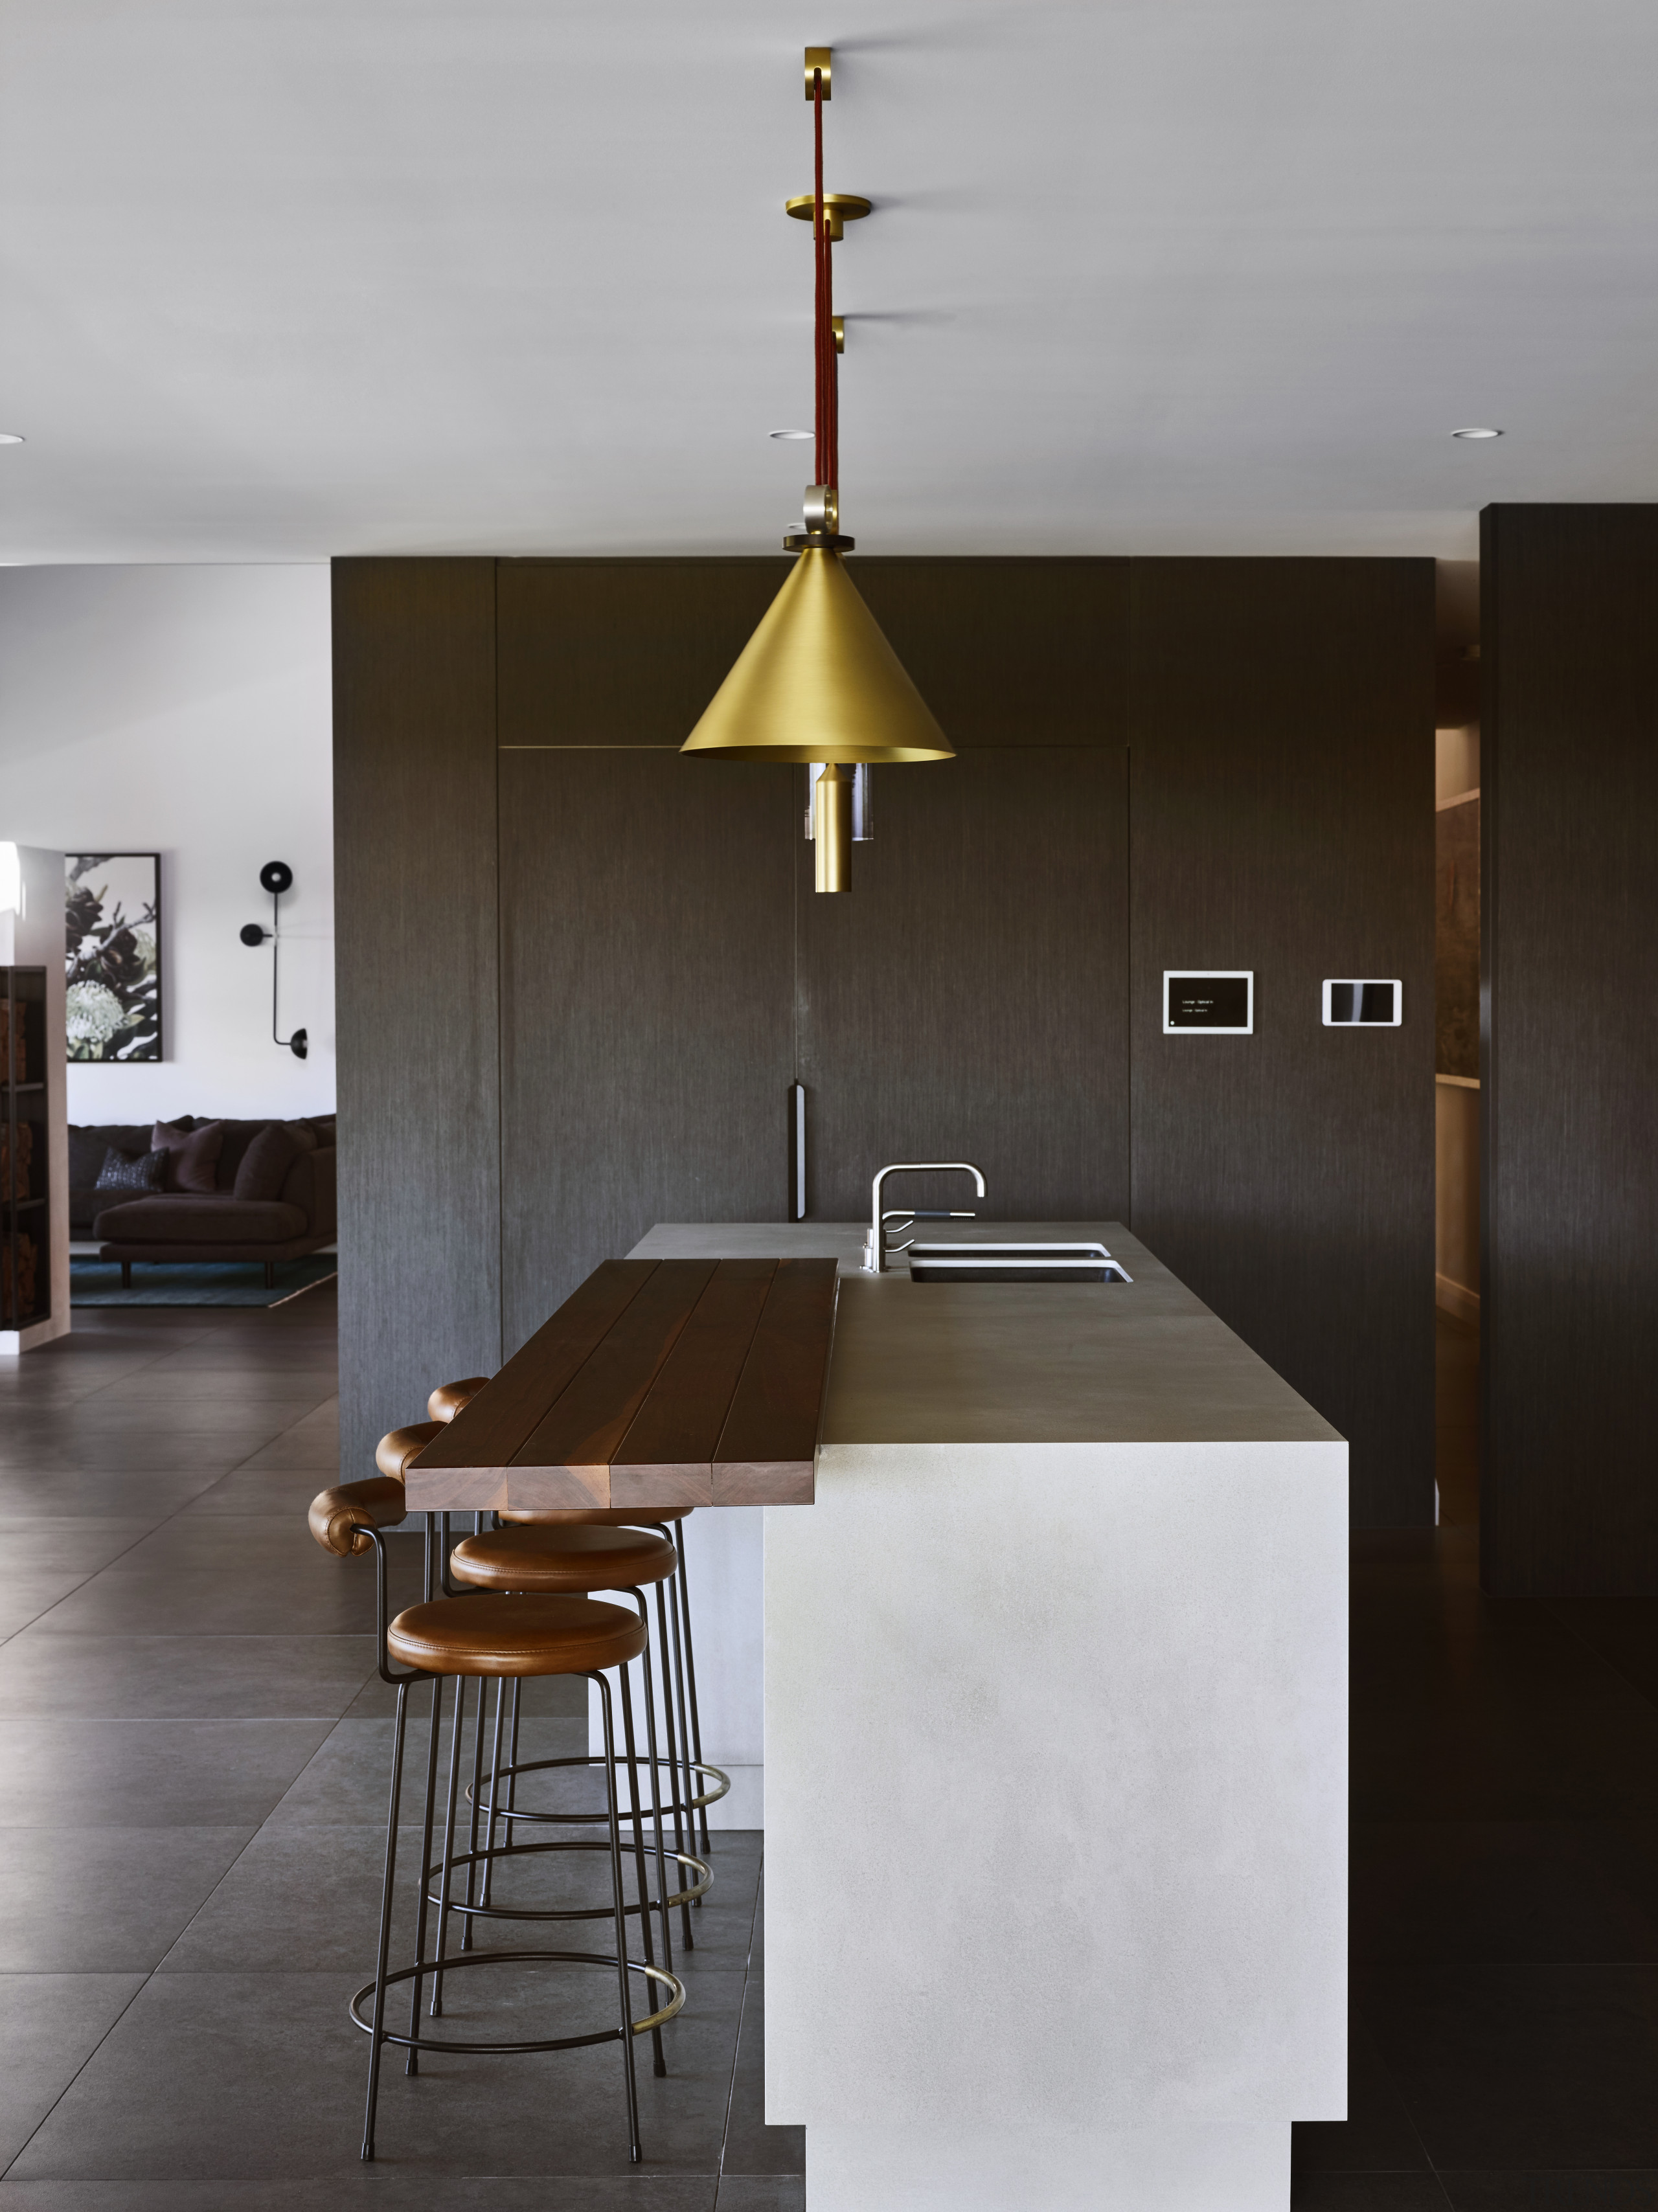 Wood stool tops and servery counter contrast the kitchen, design, Darren James, stoolls, servery, white porcelain